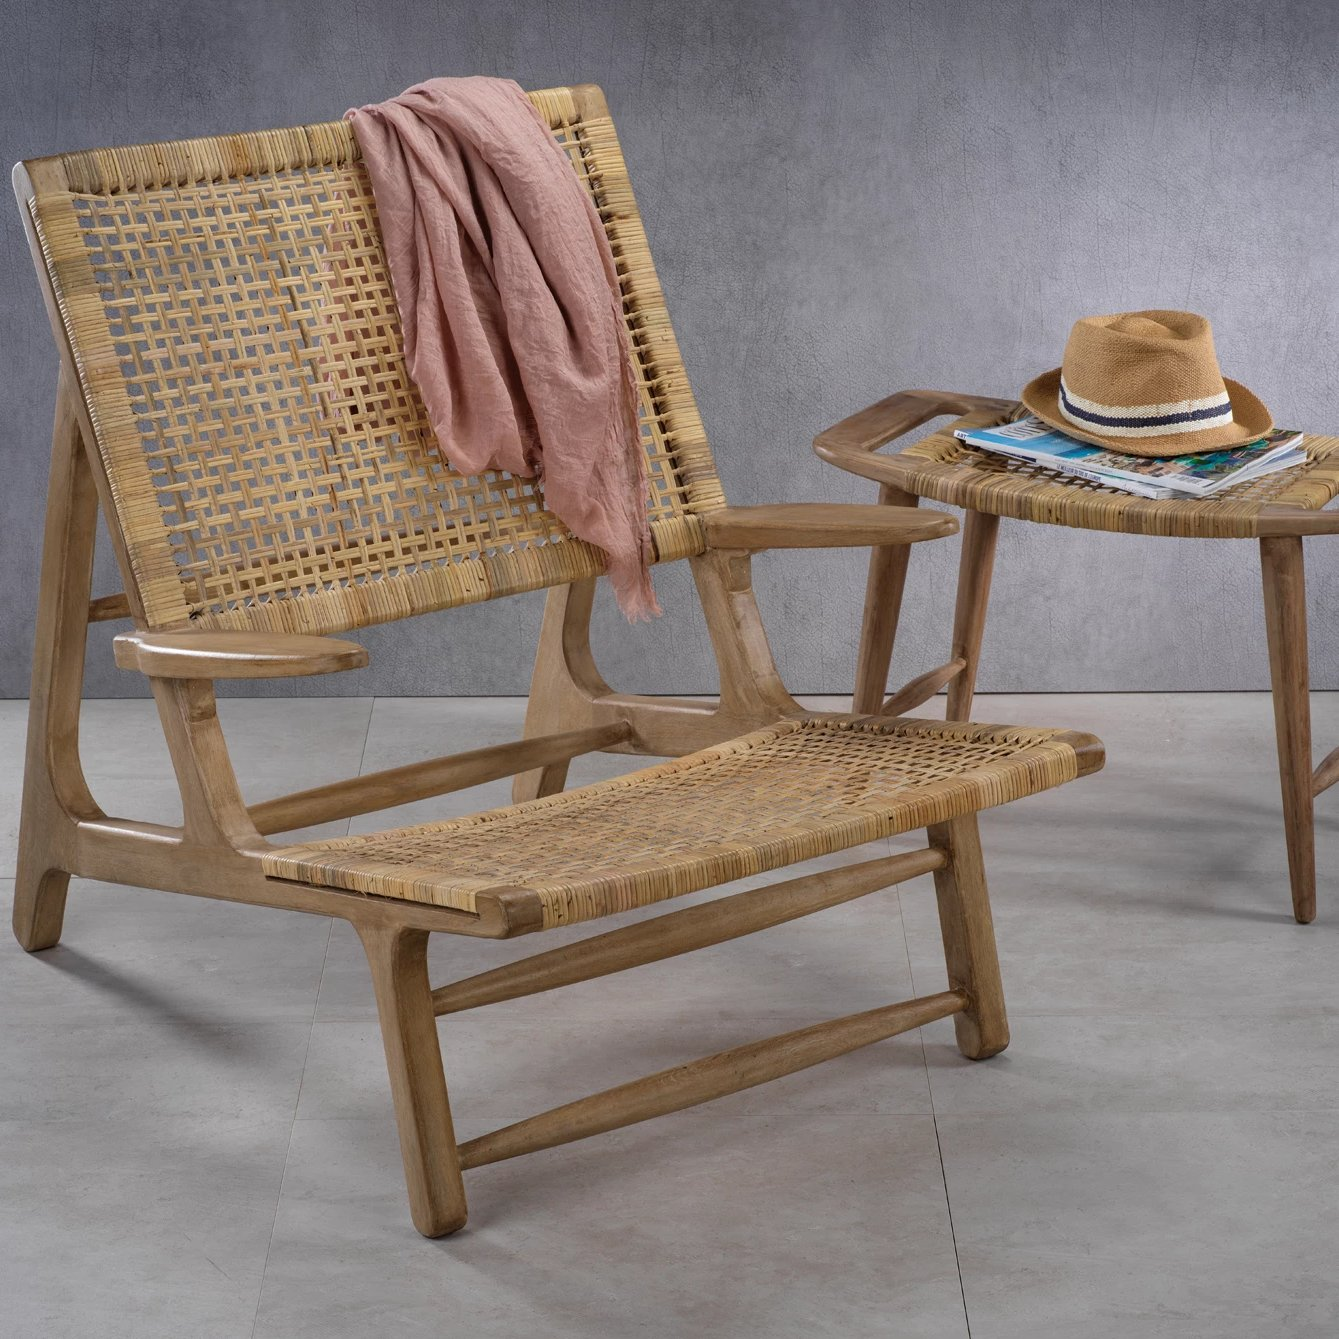 Sand River Mango Wood & Cane Lounge Chair